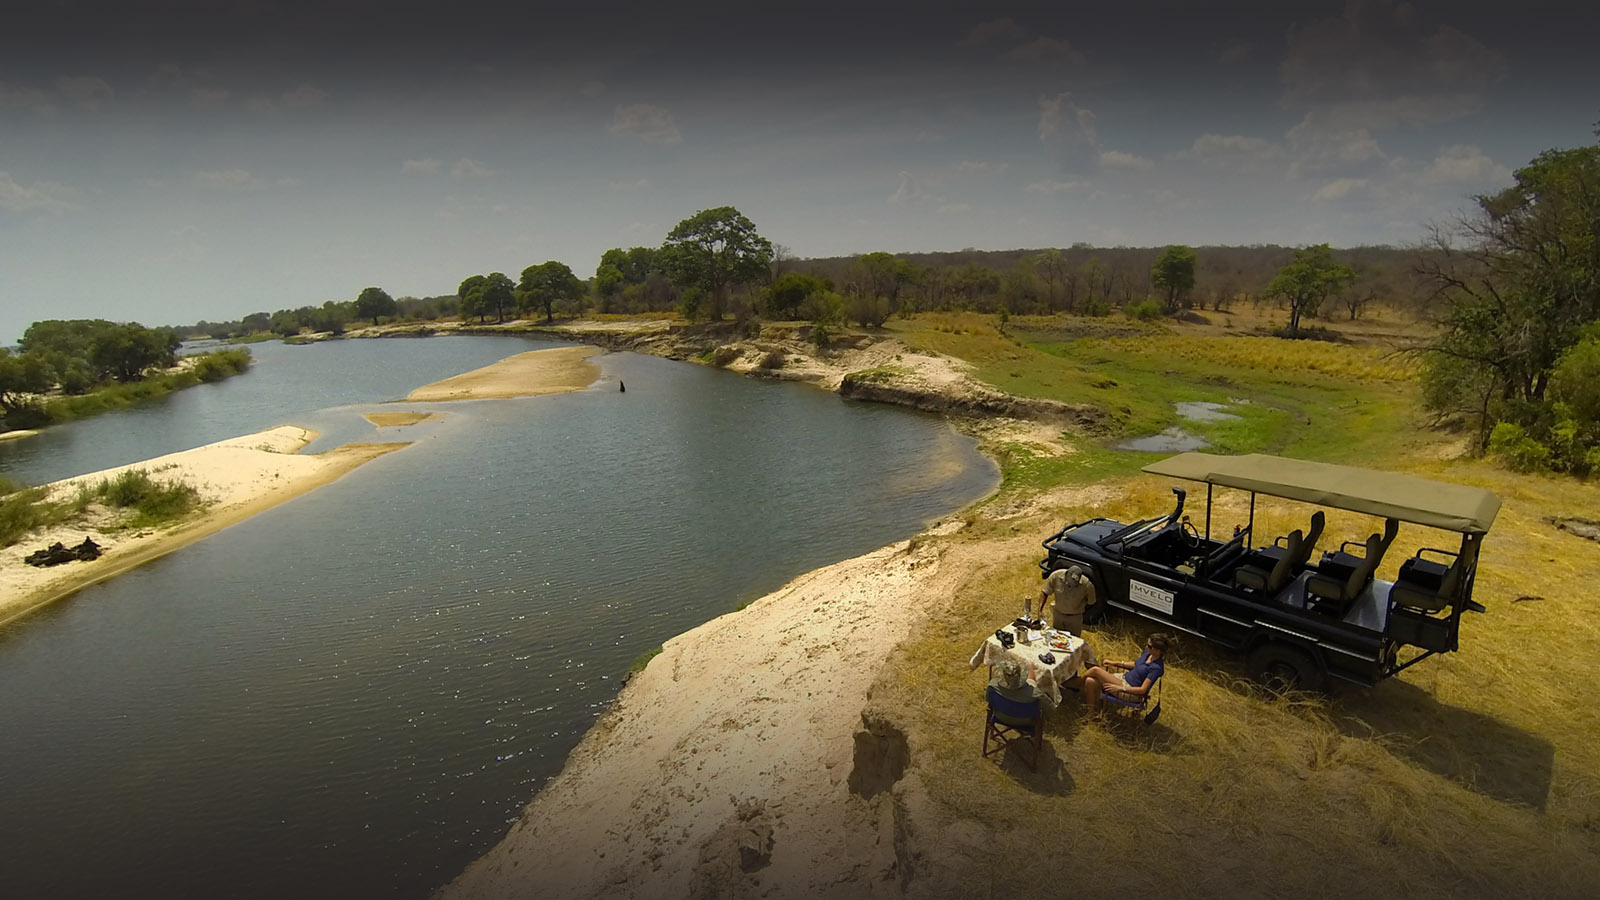 zambezi sands river camp victoria-falls-zimbabwe-accommodation-imvelo-safari-lodges-zambezi-national-park-lunch